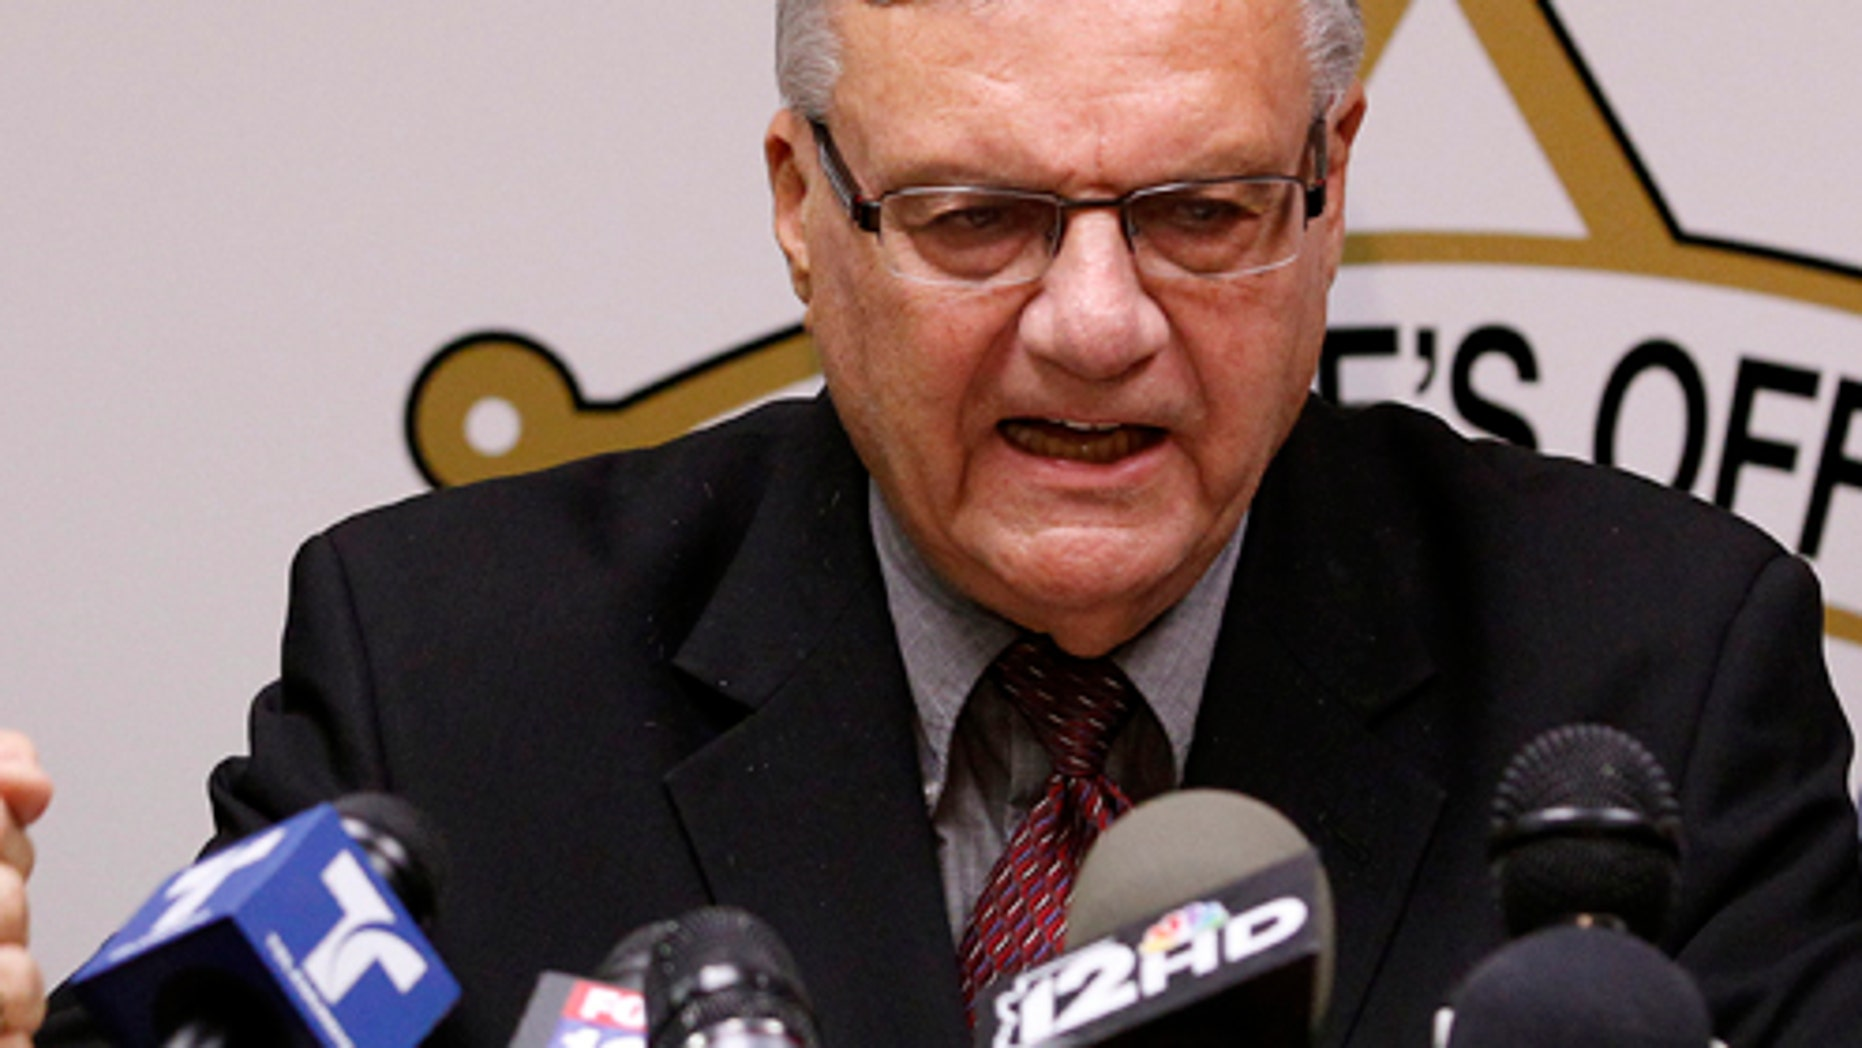 May 10, 2012: Maricopa County Sheriff Joe Arpaio, pounds his fist on the podium as he answers questions.